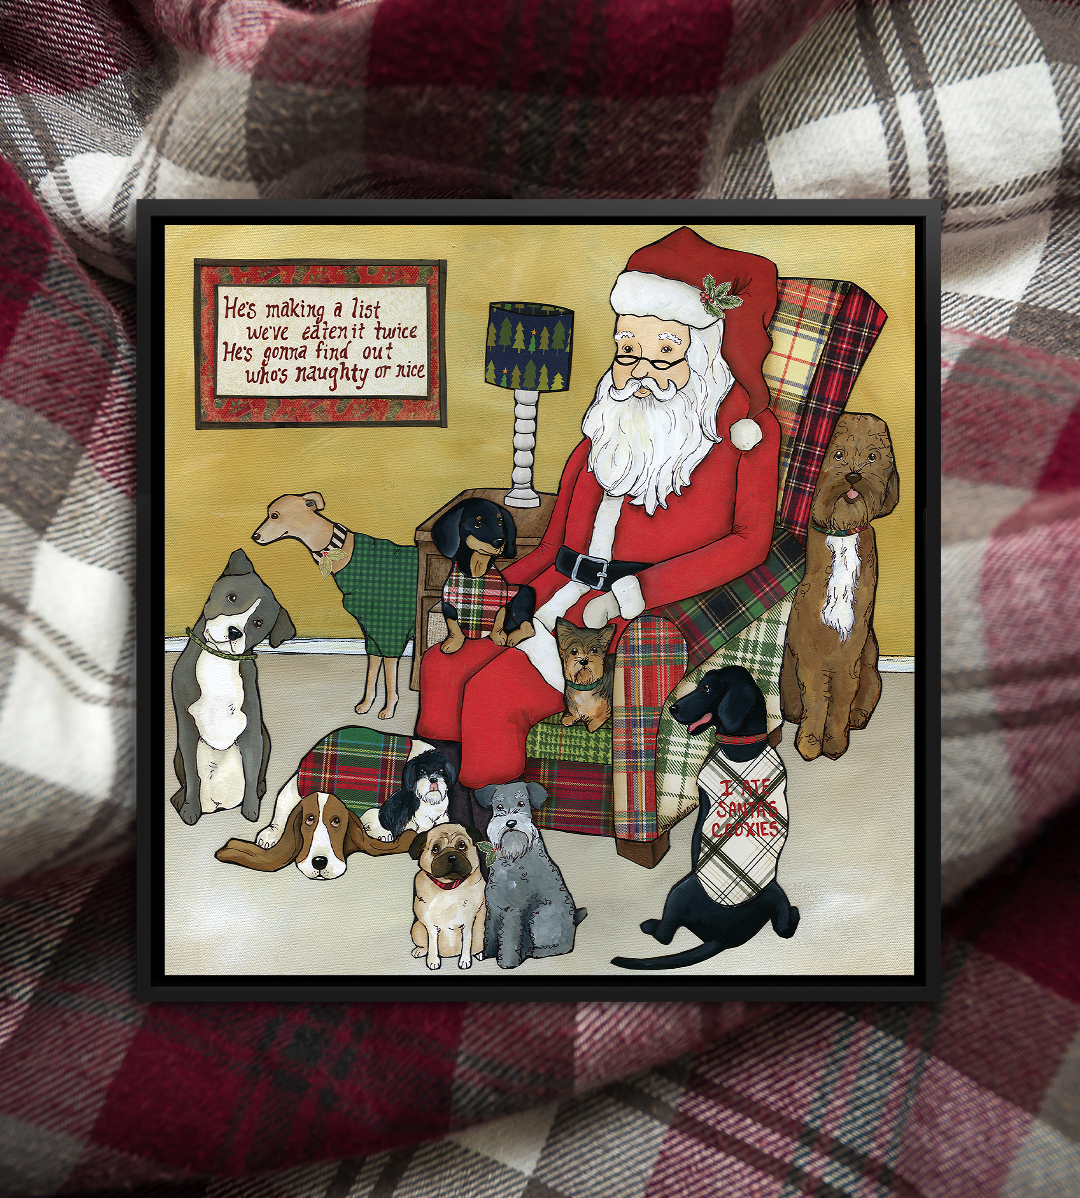 Santa sitting on a plaid chair with a group of dogs sitting around him